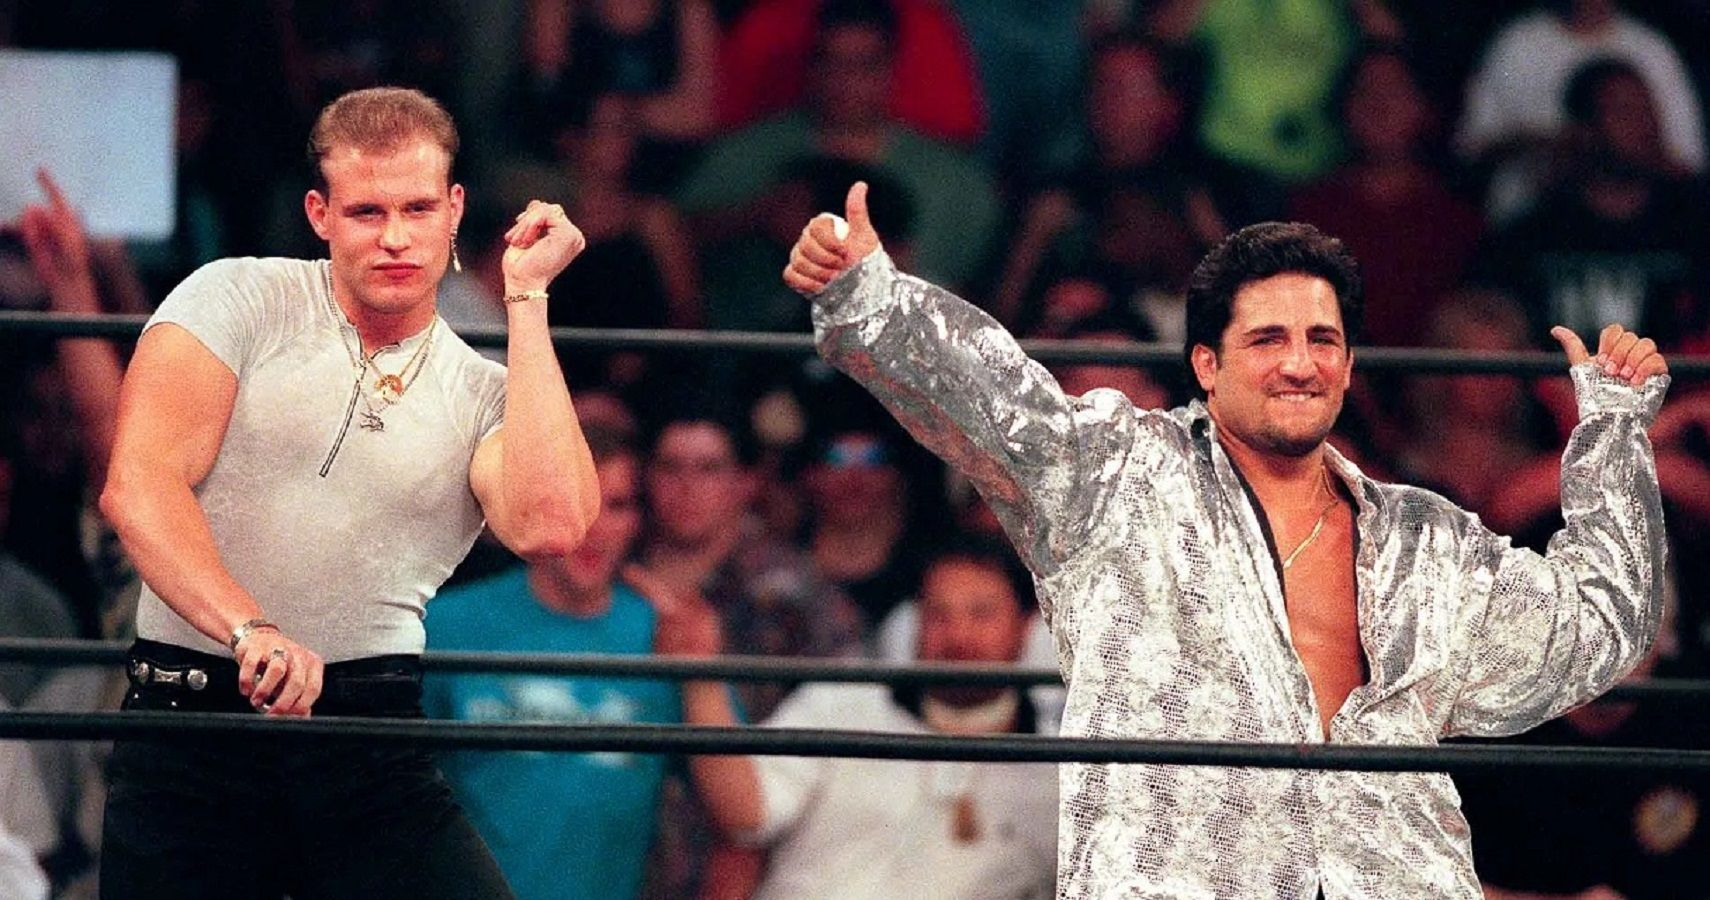 10 Wcw Power Plant Wrestlers That Wasted Their Potential Hamilton grew up in london. 10 wcw power plant wrestlers that